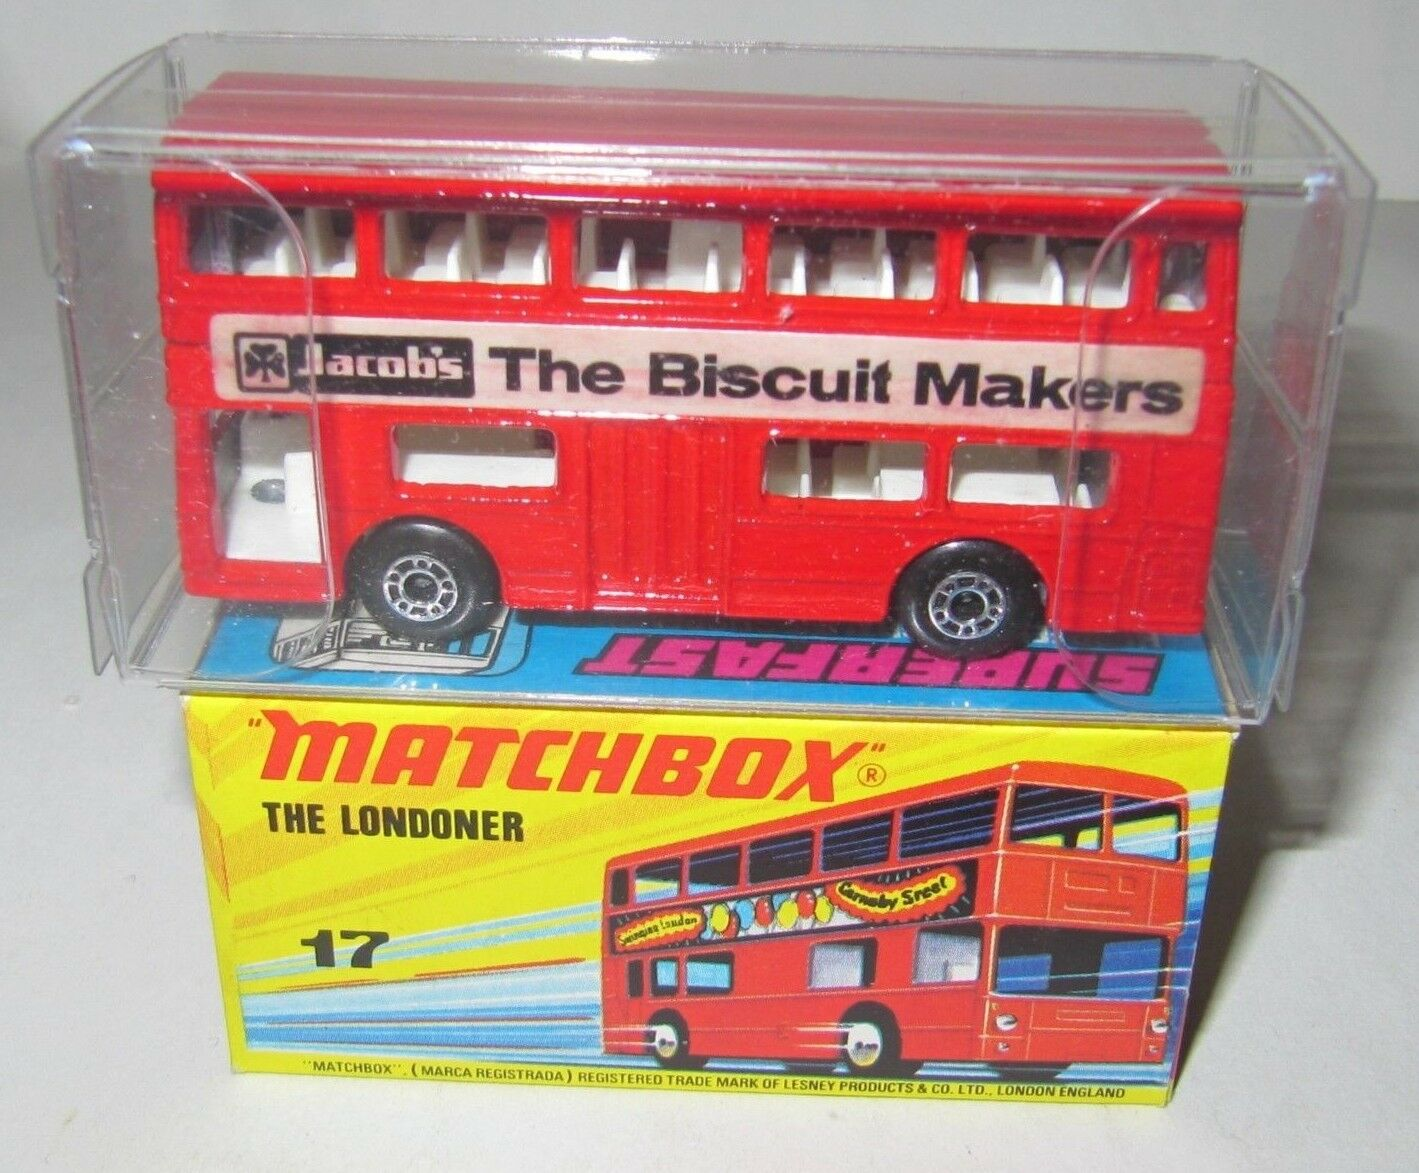 MATCHBOX SUPERFAST No.17 THE THE THE LONDONER BUS 'JACOB'S' 'V RARE' RED BUS MIB 4d2151